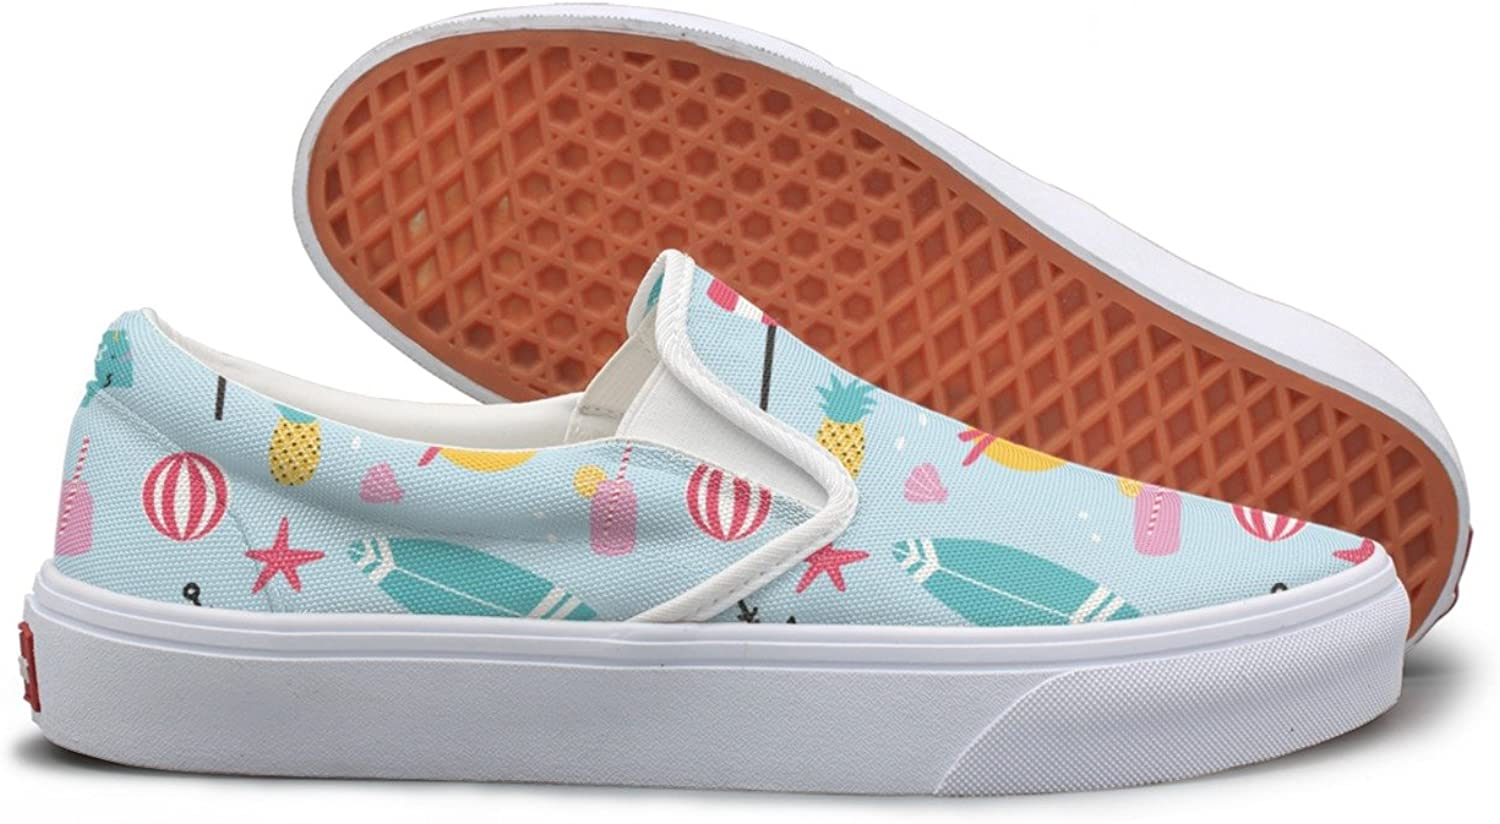 SEERTED colorful Summer California Beach Basketball Sneakers for Women